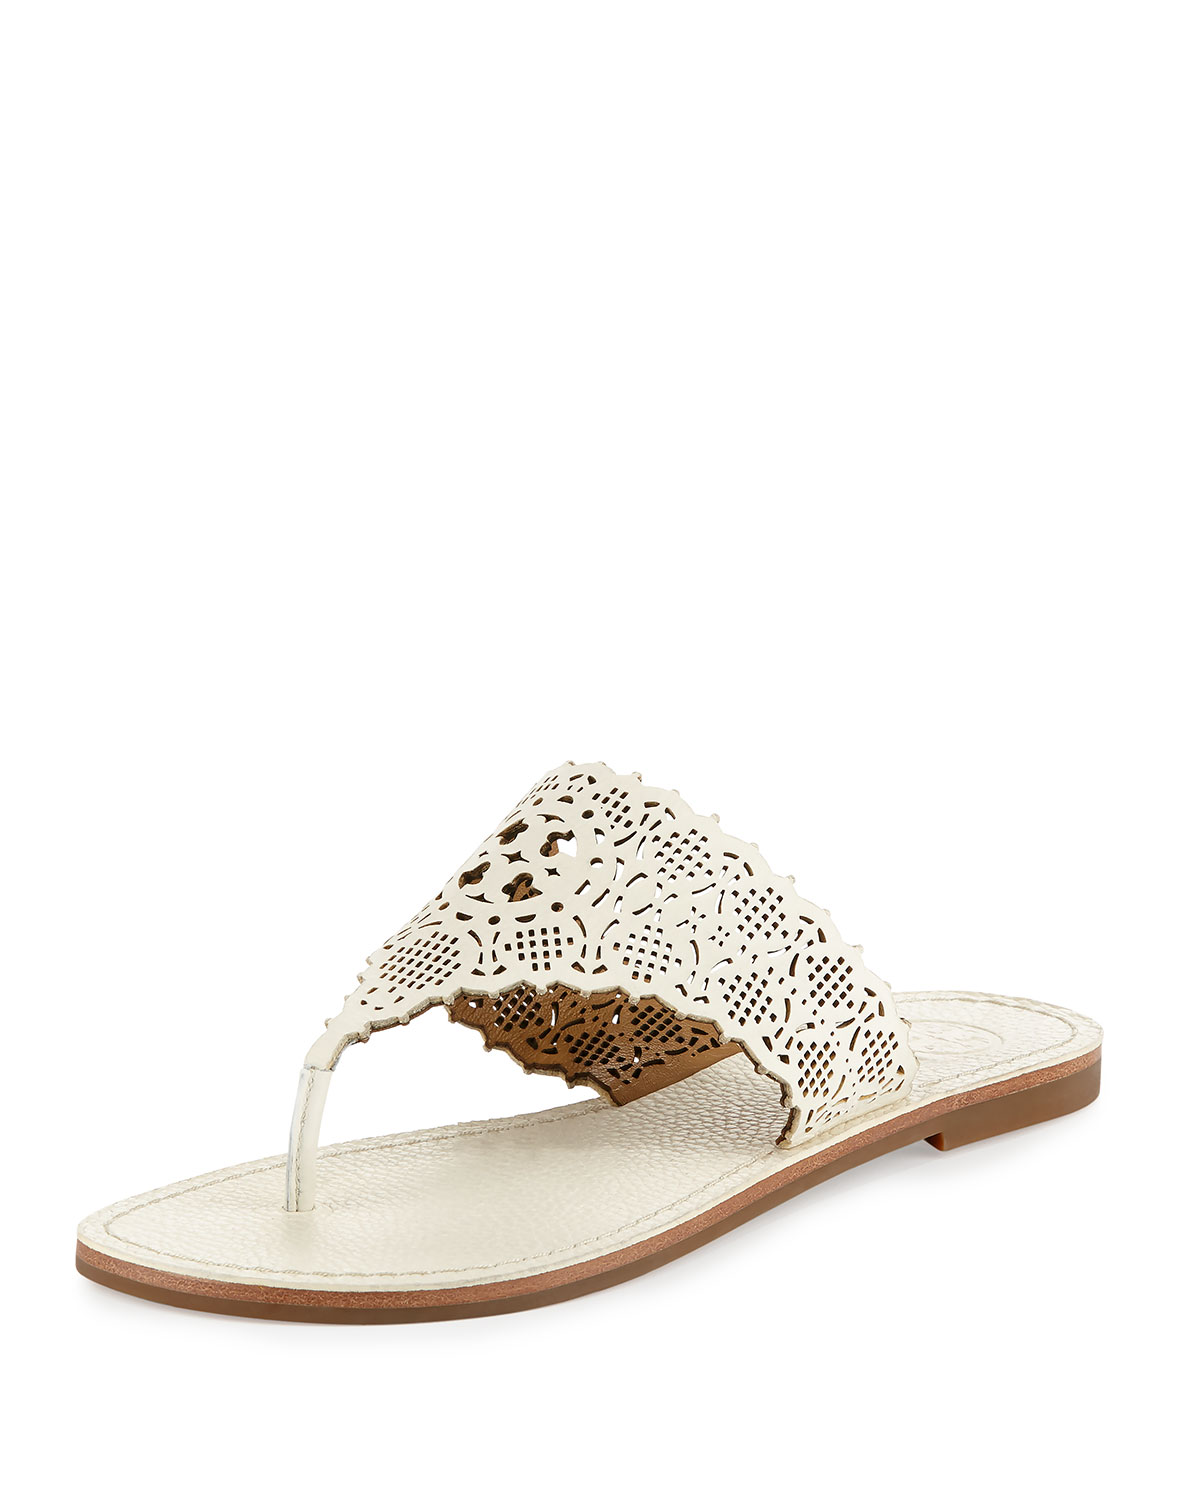 Tory Burch Roselle Laser Cut Thong Sandals new styles cheap price sale low shipping fee clearance for sale great deals cheap online free shipping footlocker pictures iIilR